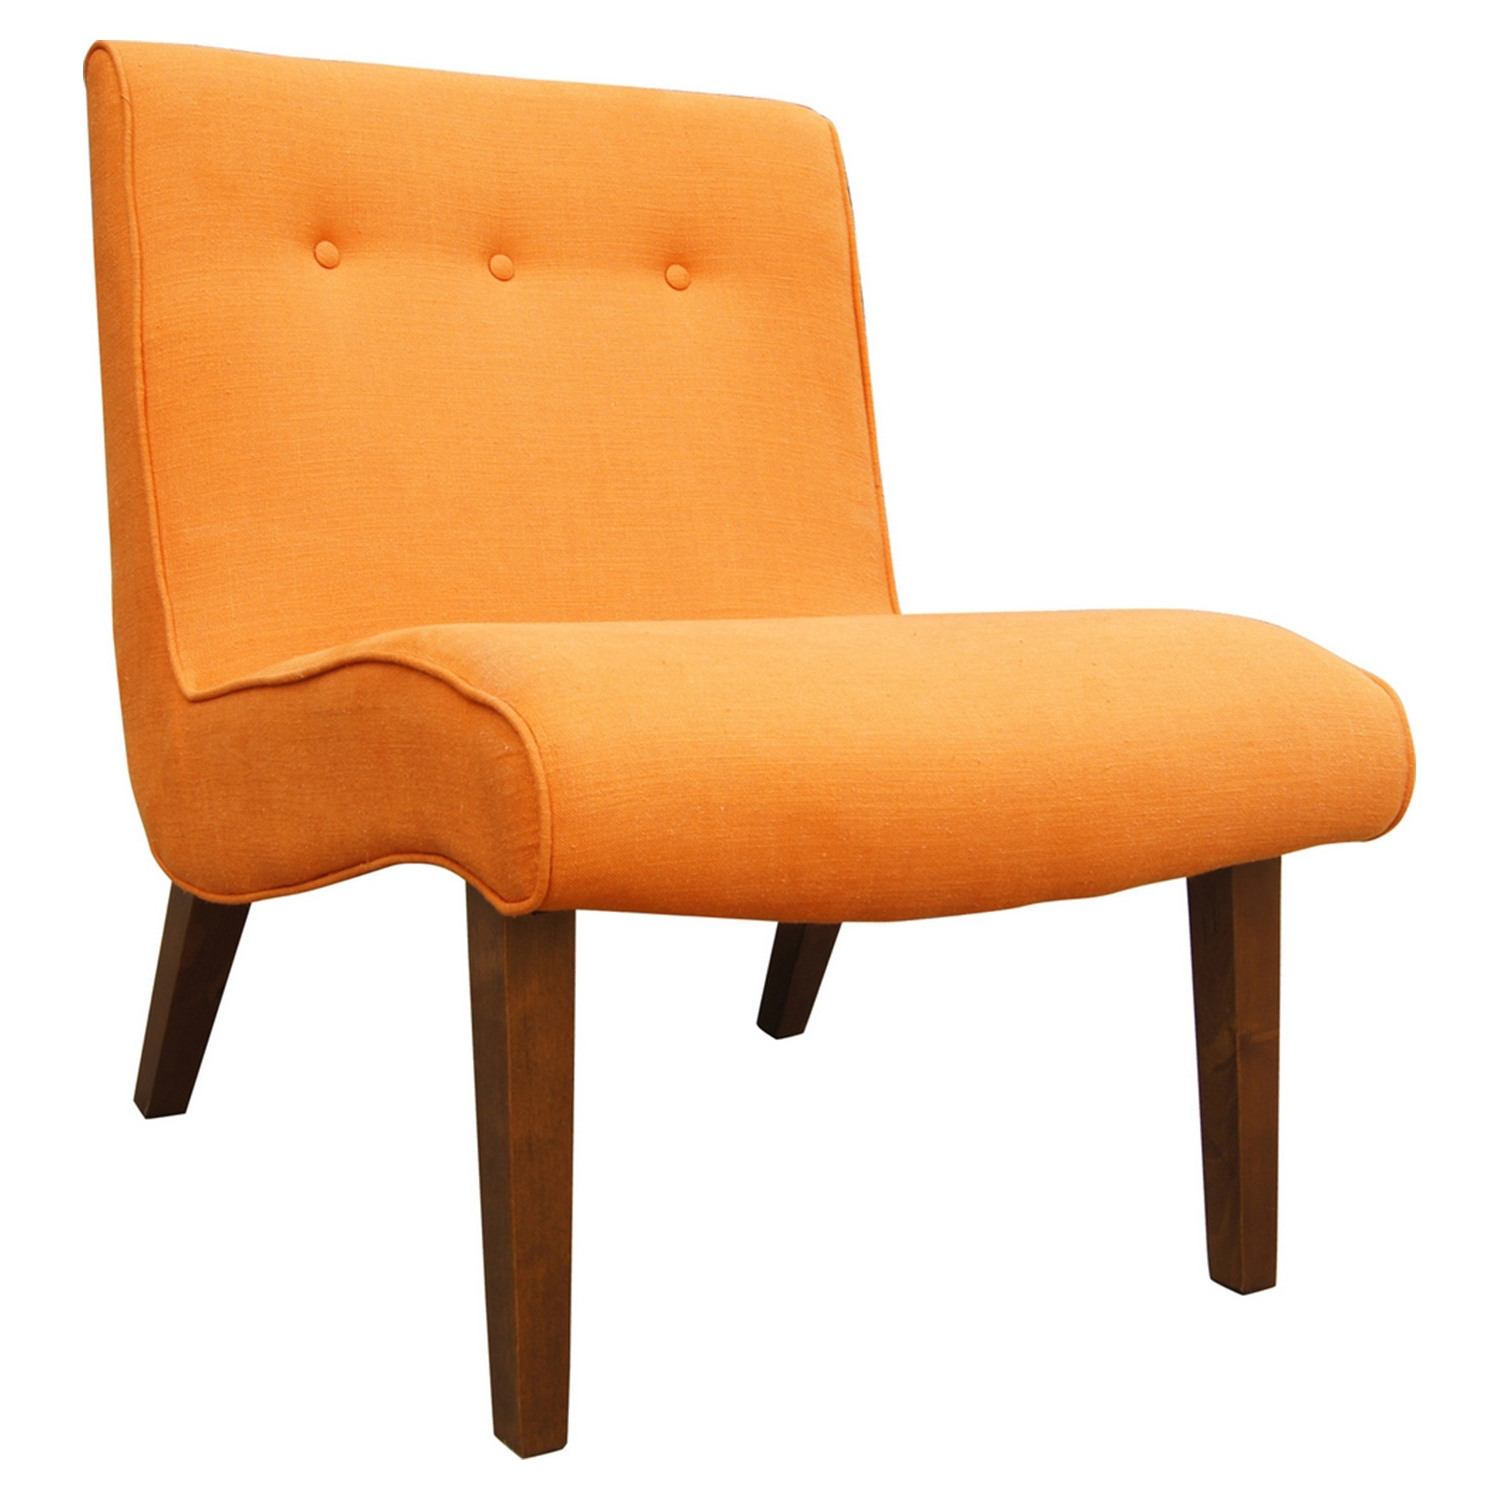 Mancini Lounge Chair - Button Tufted, Orange (Set of 2)